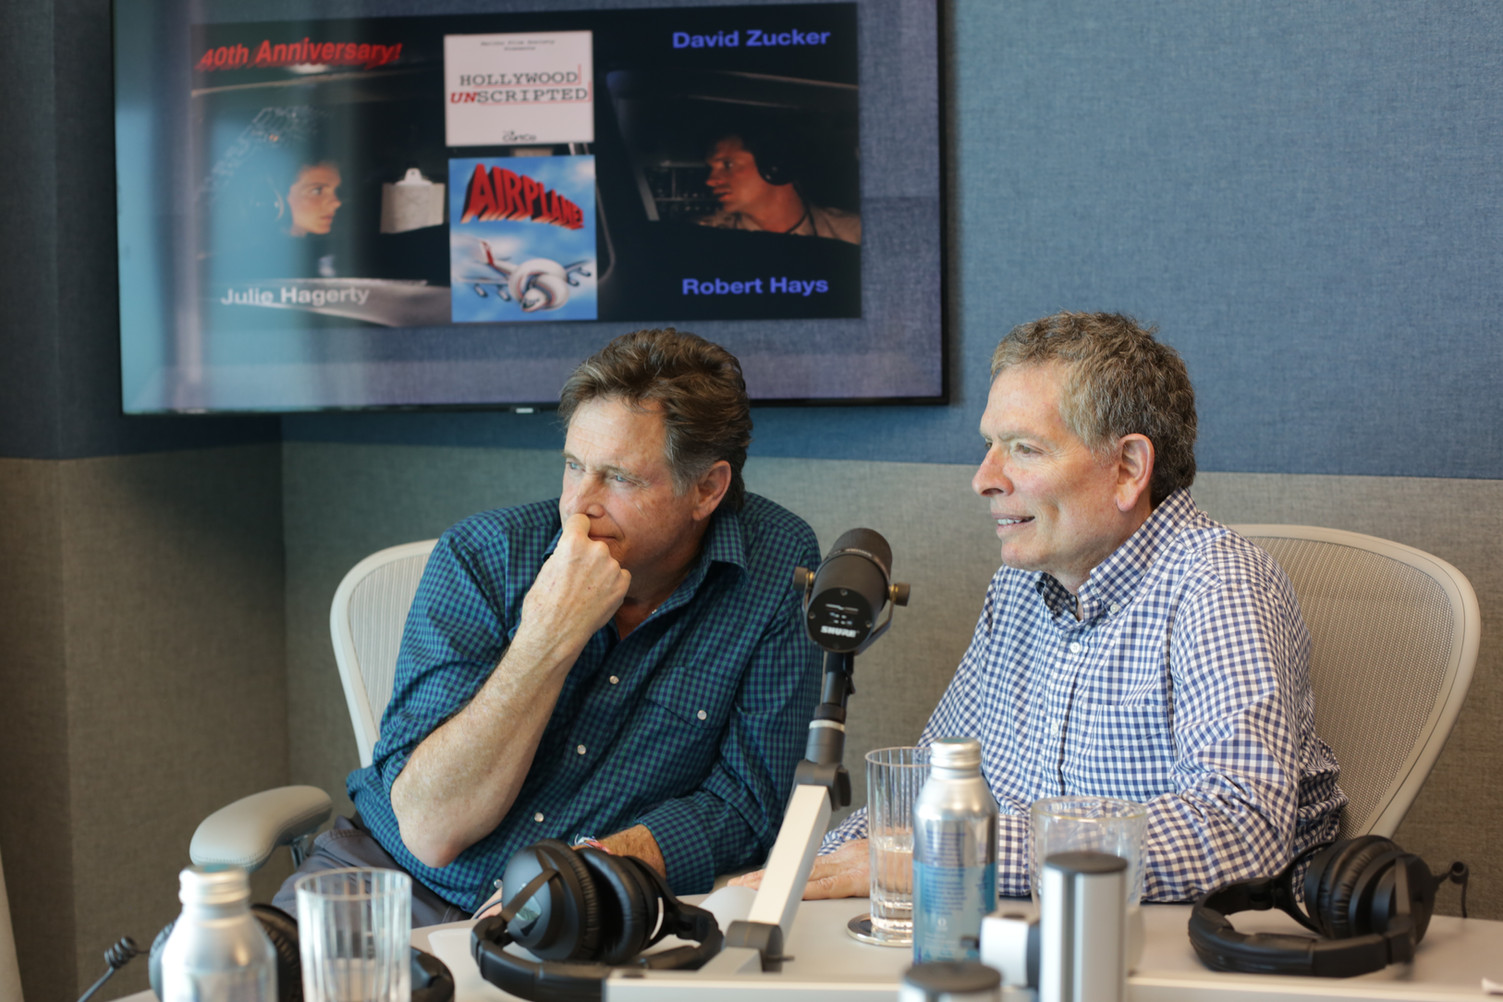 Ep 19 - AIRPLANE! A 40TH ANNIVERSARY CELEBRATION   Guests: Robert Hays and David Zucker